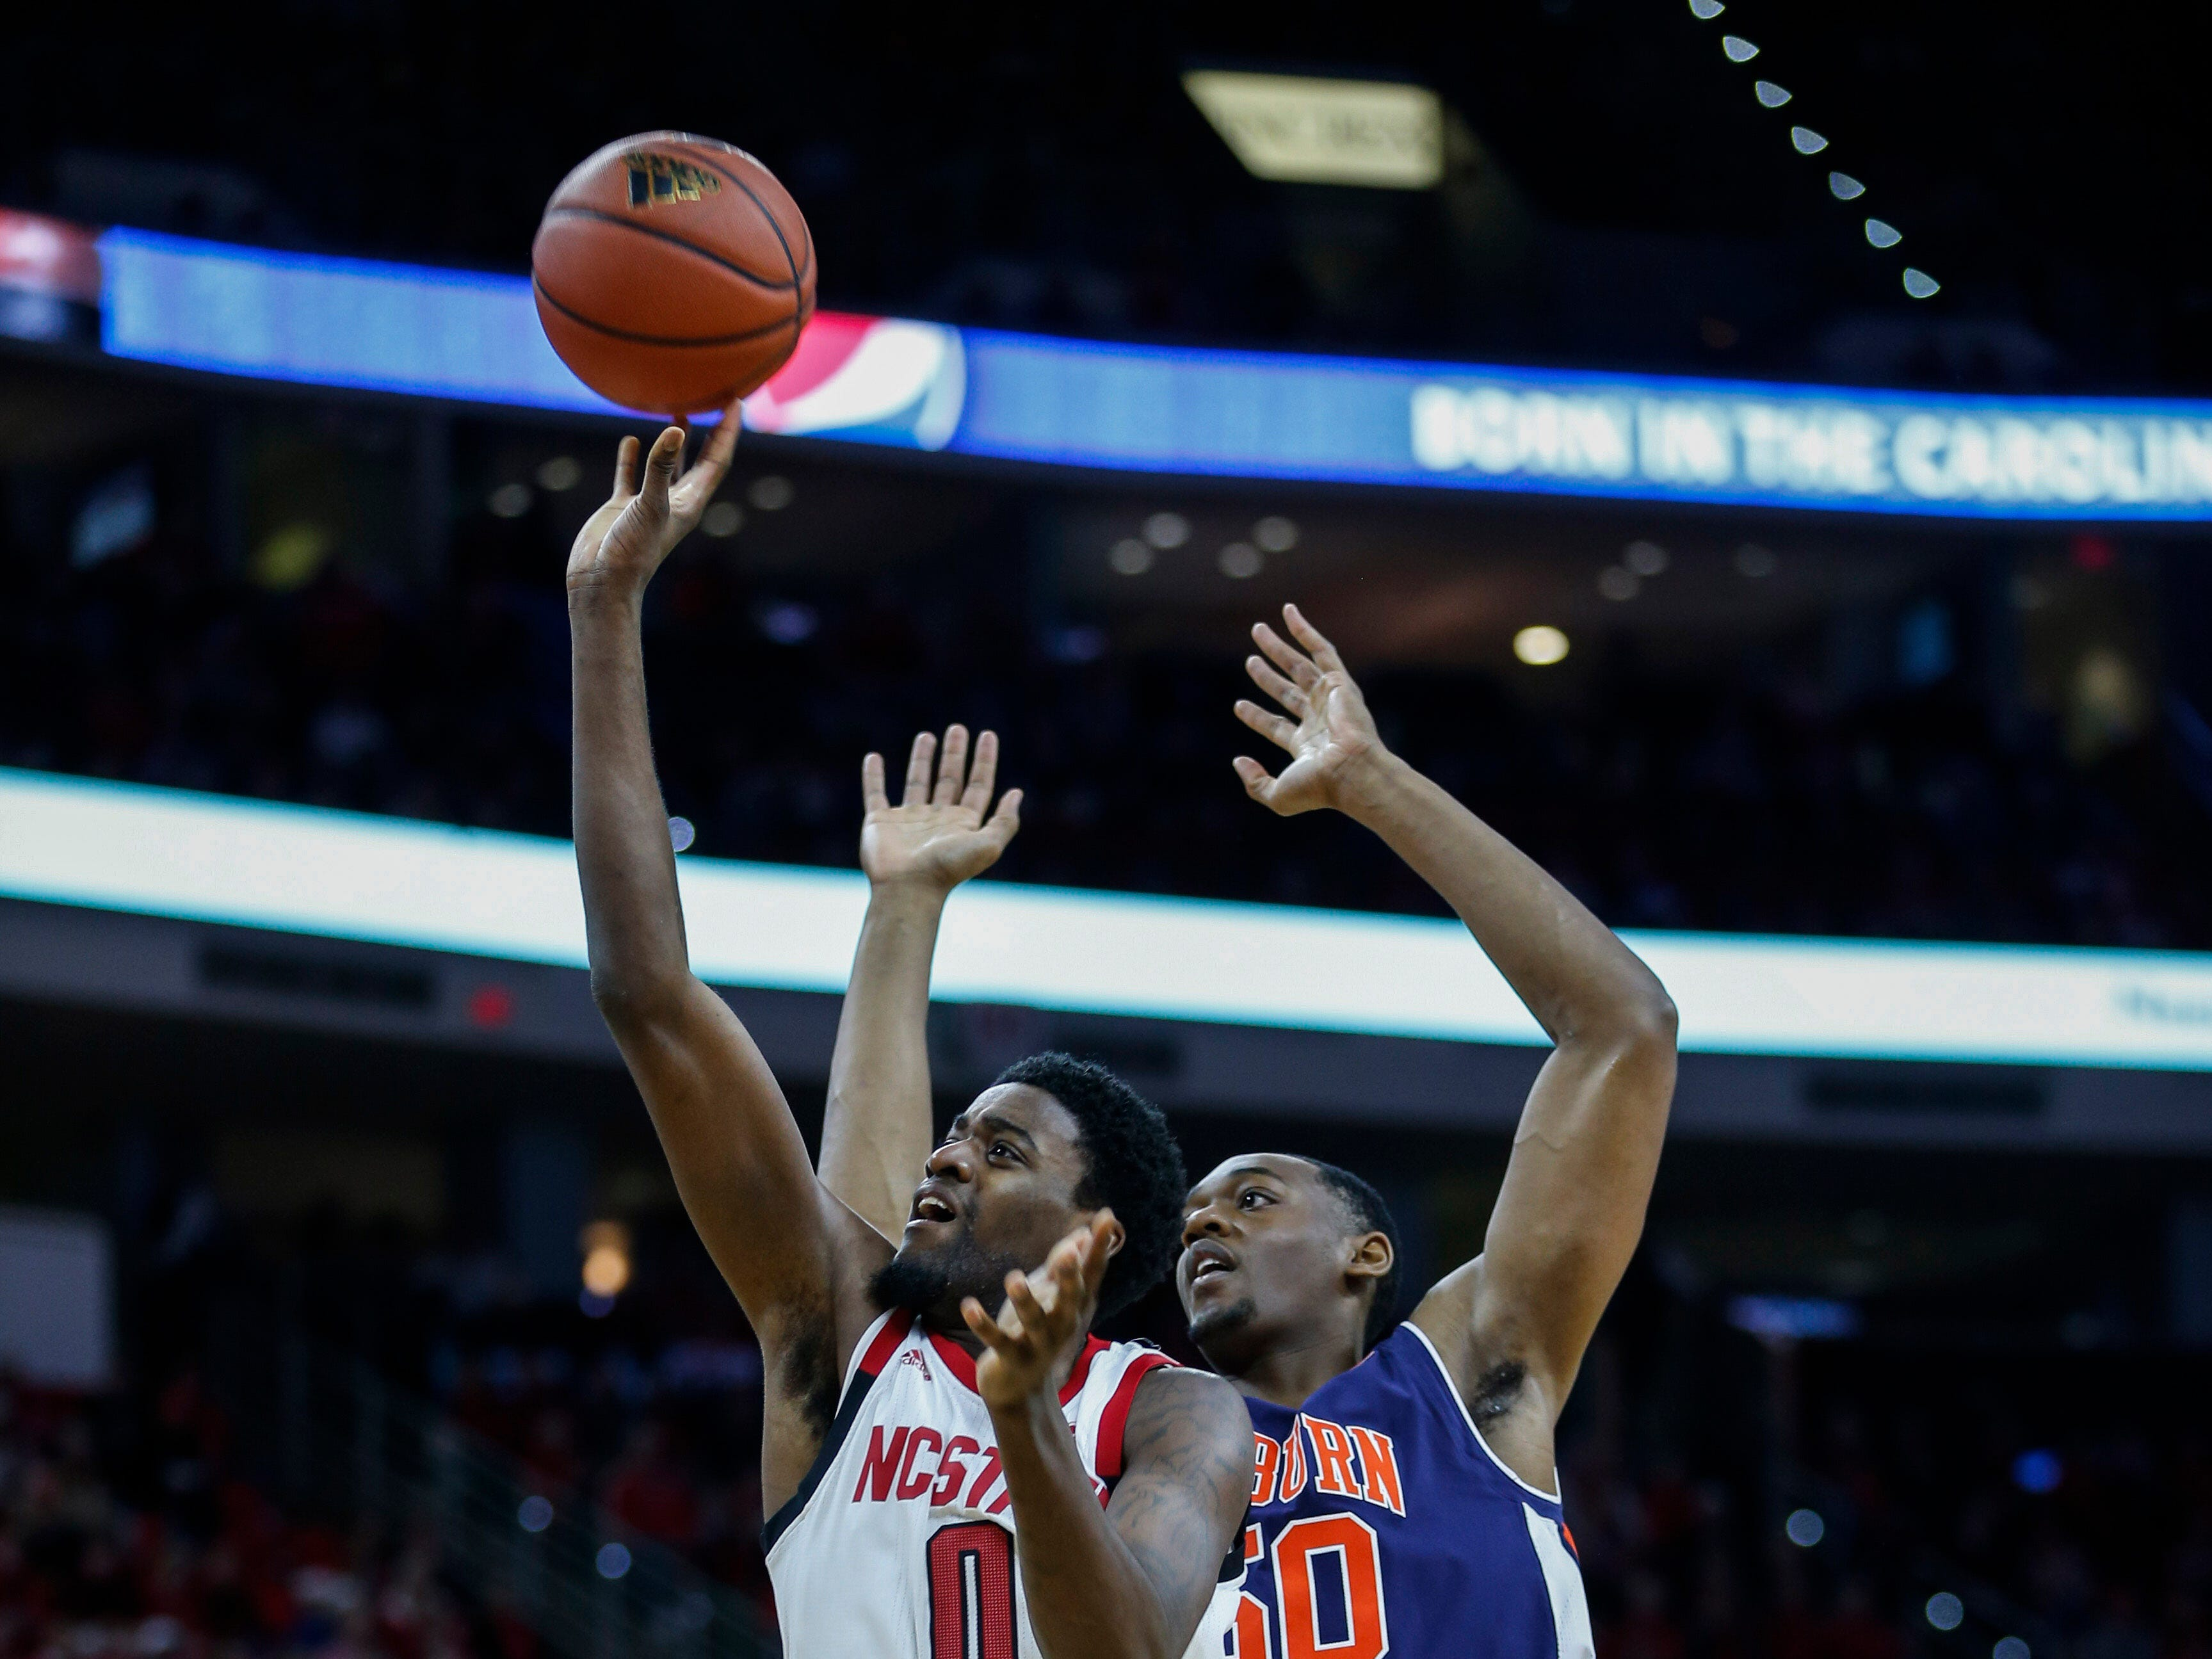 Dec 19, 2018; Raleigh, NC, USA; North Carolina State Wolfpack forward DJ Funderburk (0) shoots against Auburn Tigers center Austin Wiley in the first half at PNC Arena. Mandatory Credit: Nell Redmond-USA TODAY Sports